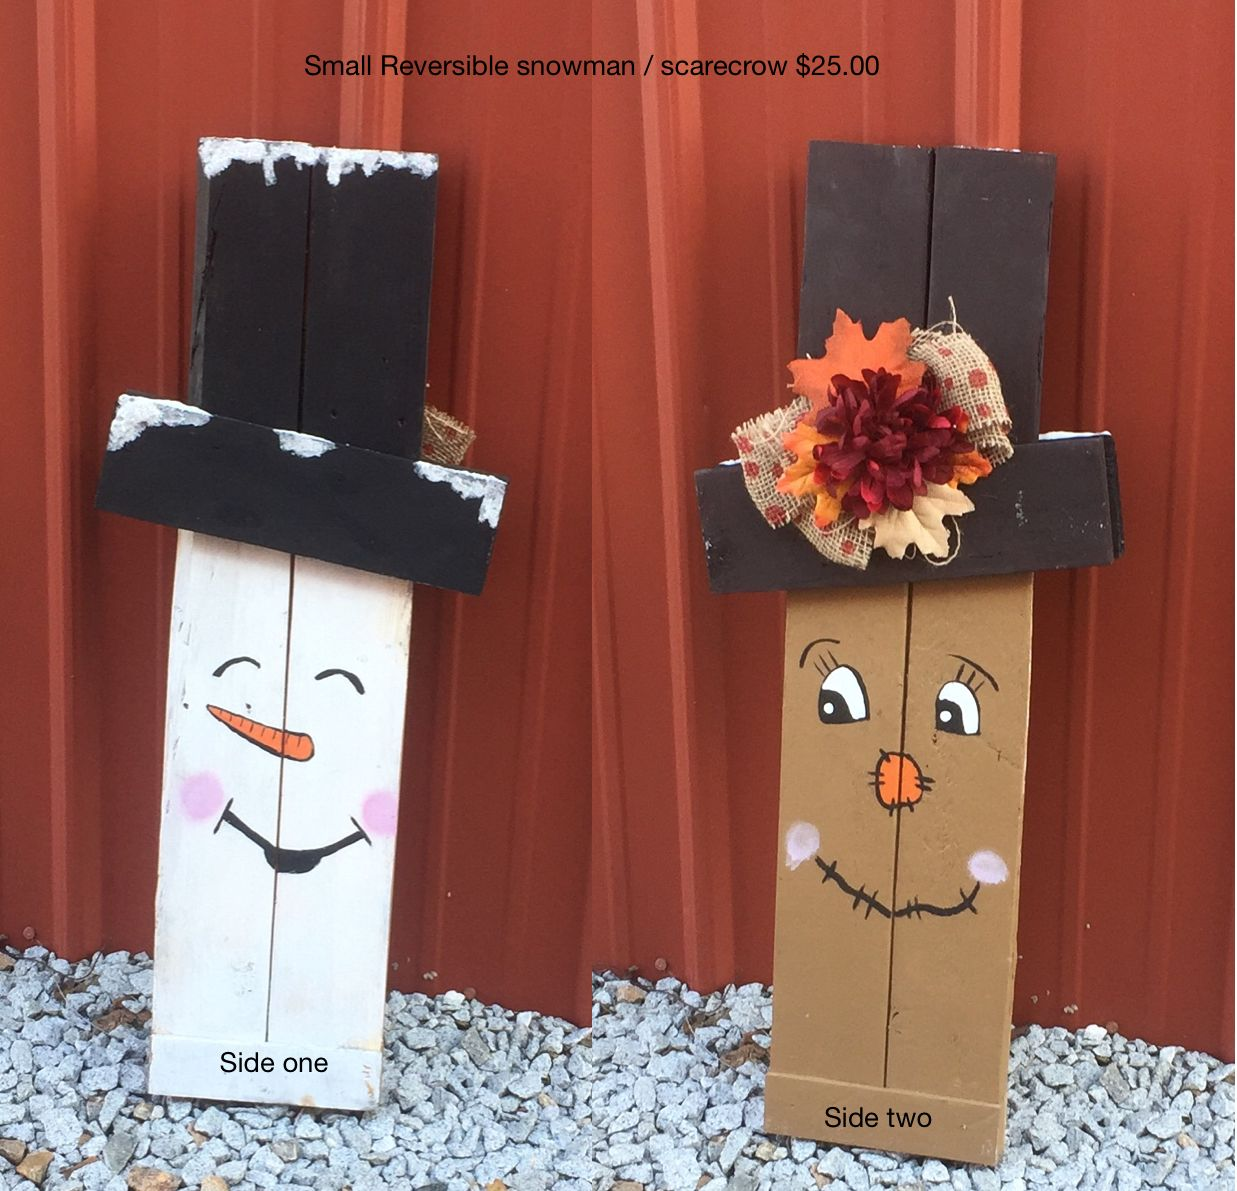 Small Snowman Scarecrow 25 00 With Images